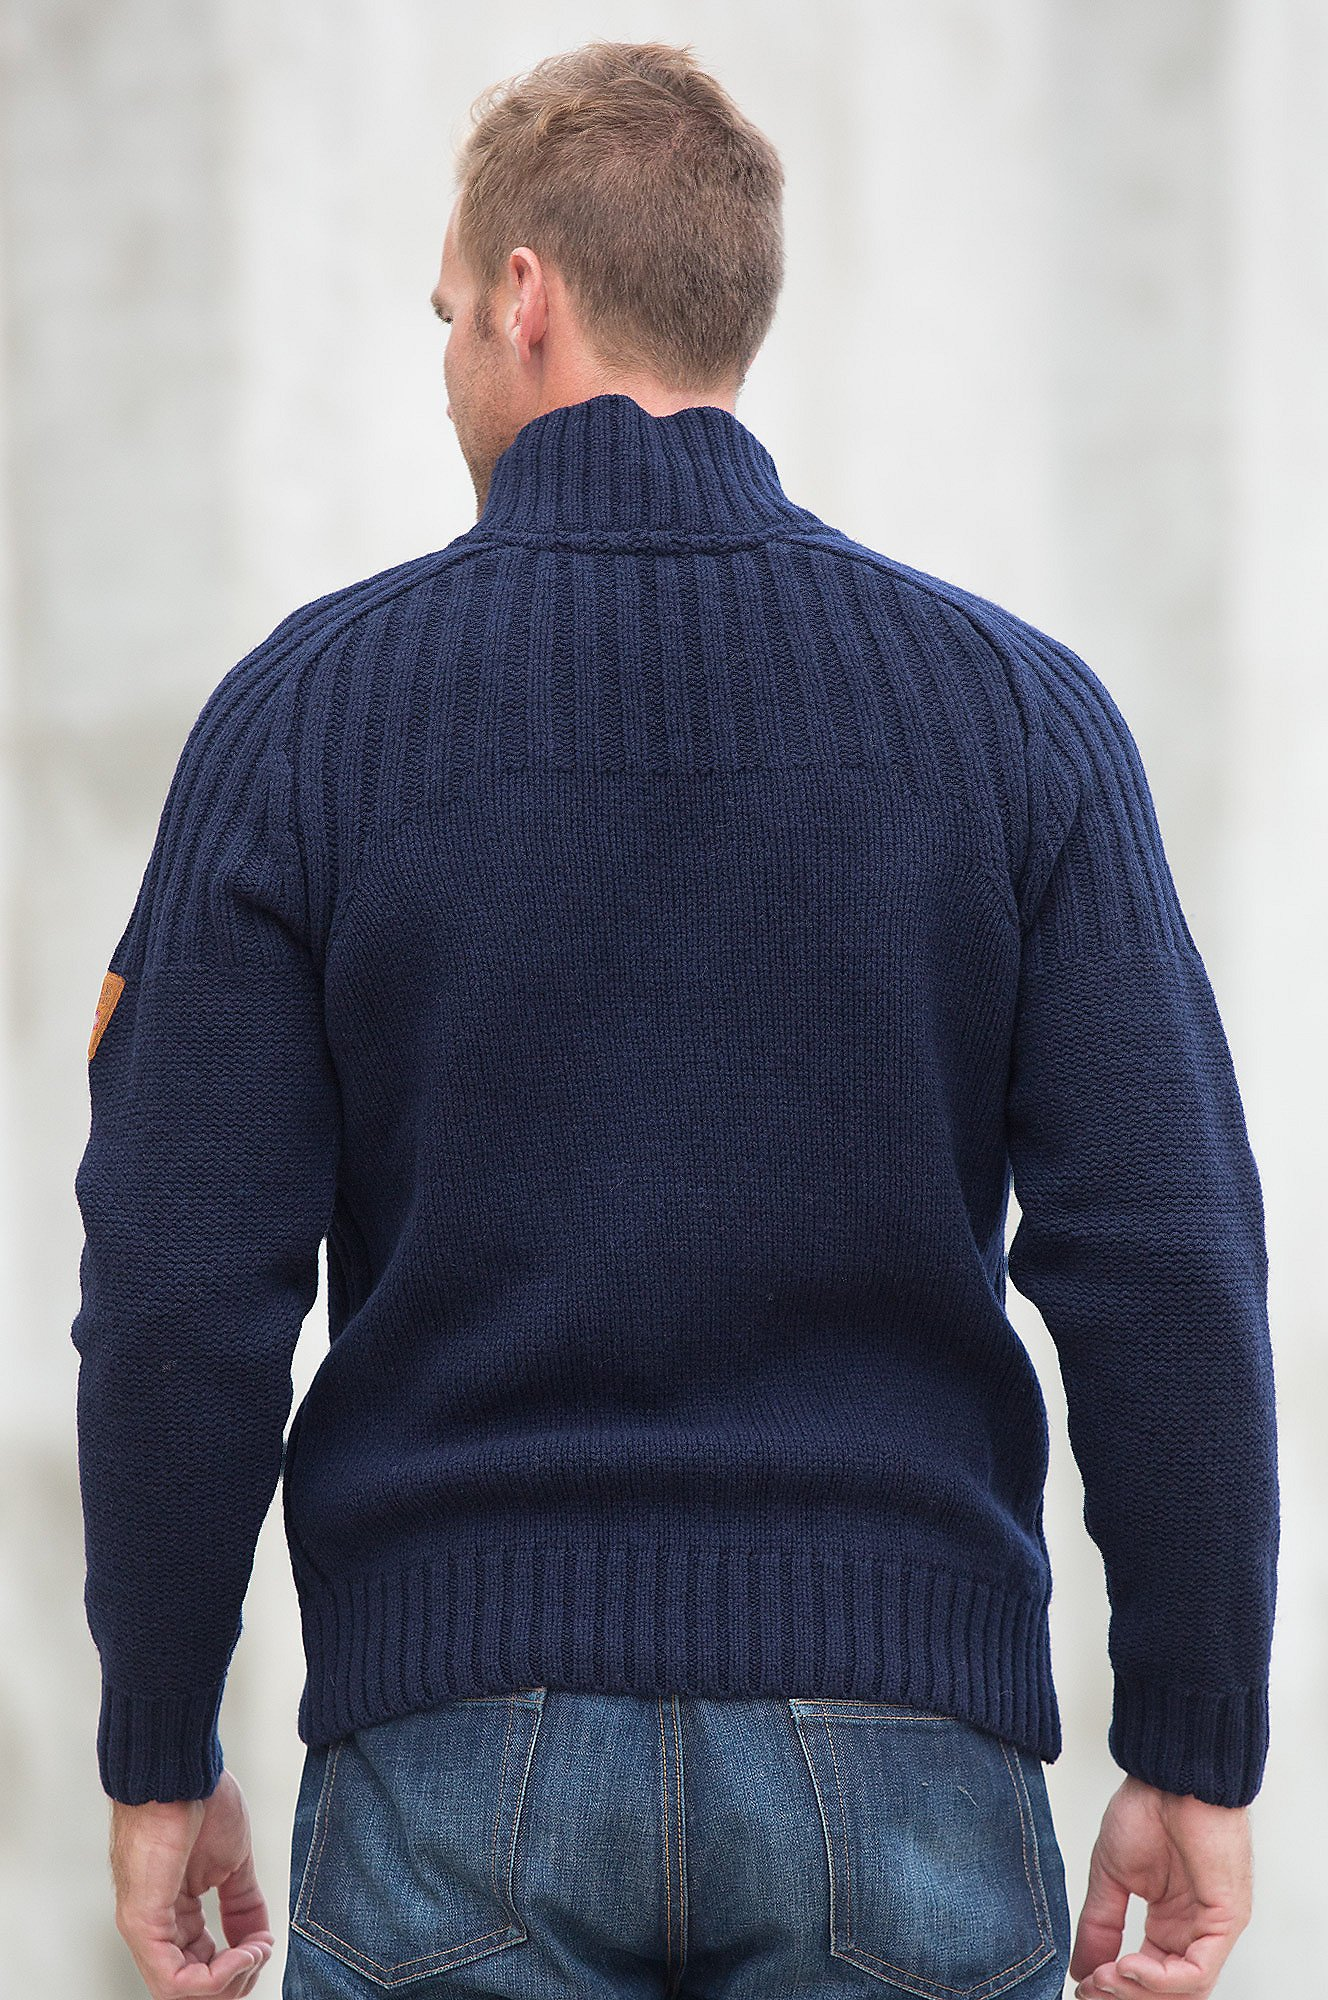 Dale of Norway Men's Ulv Sweater Navy X-Large by Dale of Norway (Image #4)